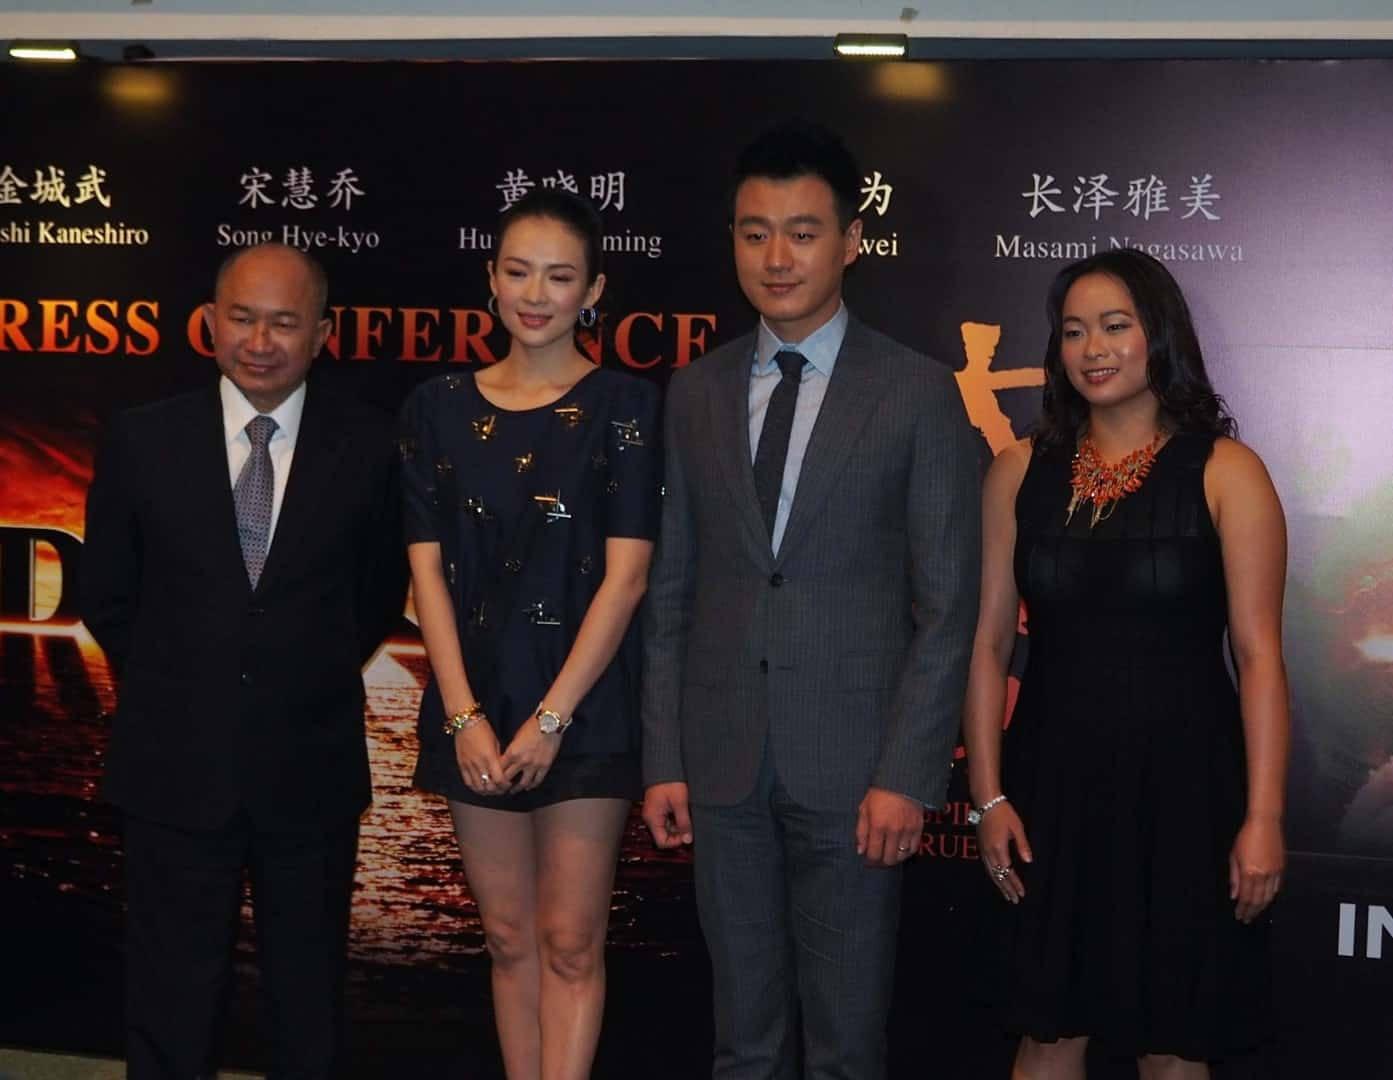 A-CROSS THE UNIVERSE – 'The Crossing' director and stars in Singapore